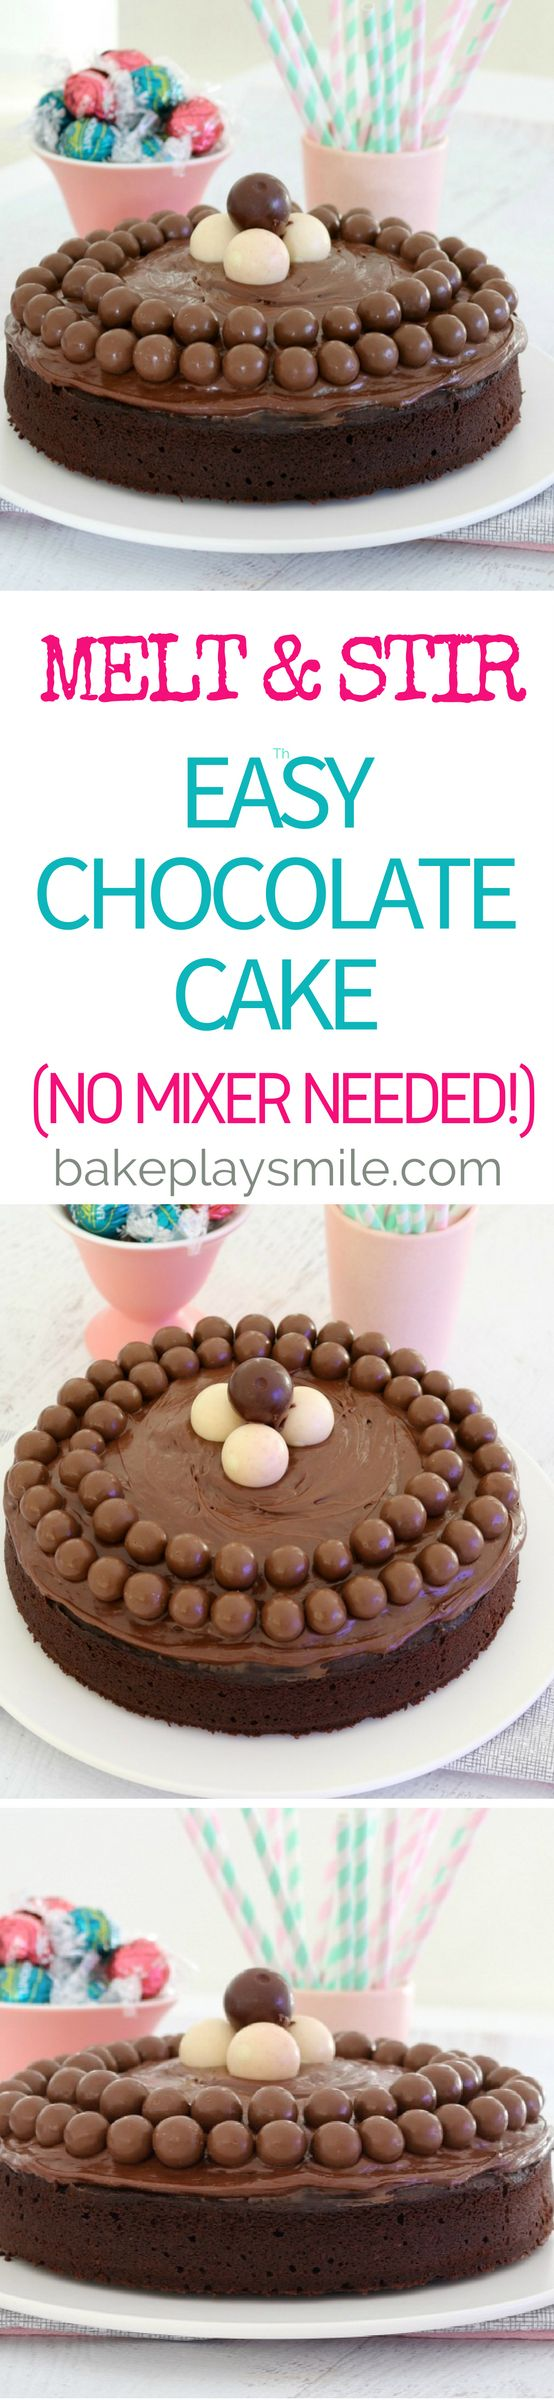 NO MIXER NEEDED CHOCOLATE CAKE!!! Donna Hay's Melt & Mix Chocolate Cake is the answer to your cake making dilemmas! It's the most deliciously moist cake… and best of all, you don't even need a mixer! Simply stir all of the ingredients together and bake. It's as simple as that! #nomixer #melt #mix #chocolate #cake #baking #easy #thermomix #conventional